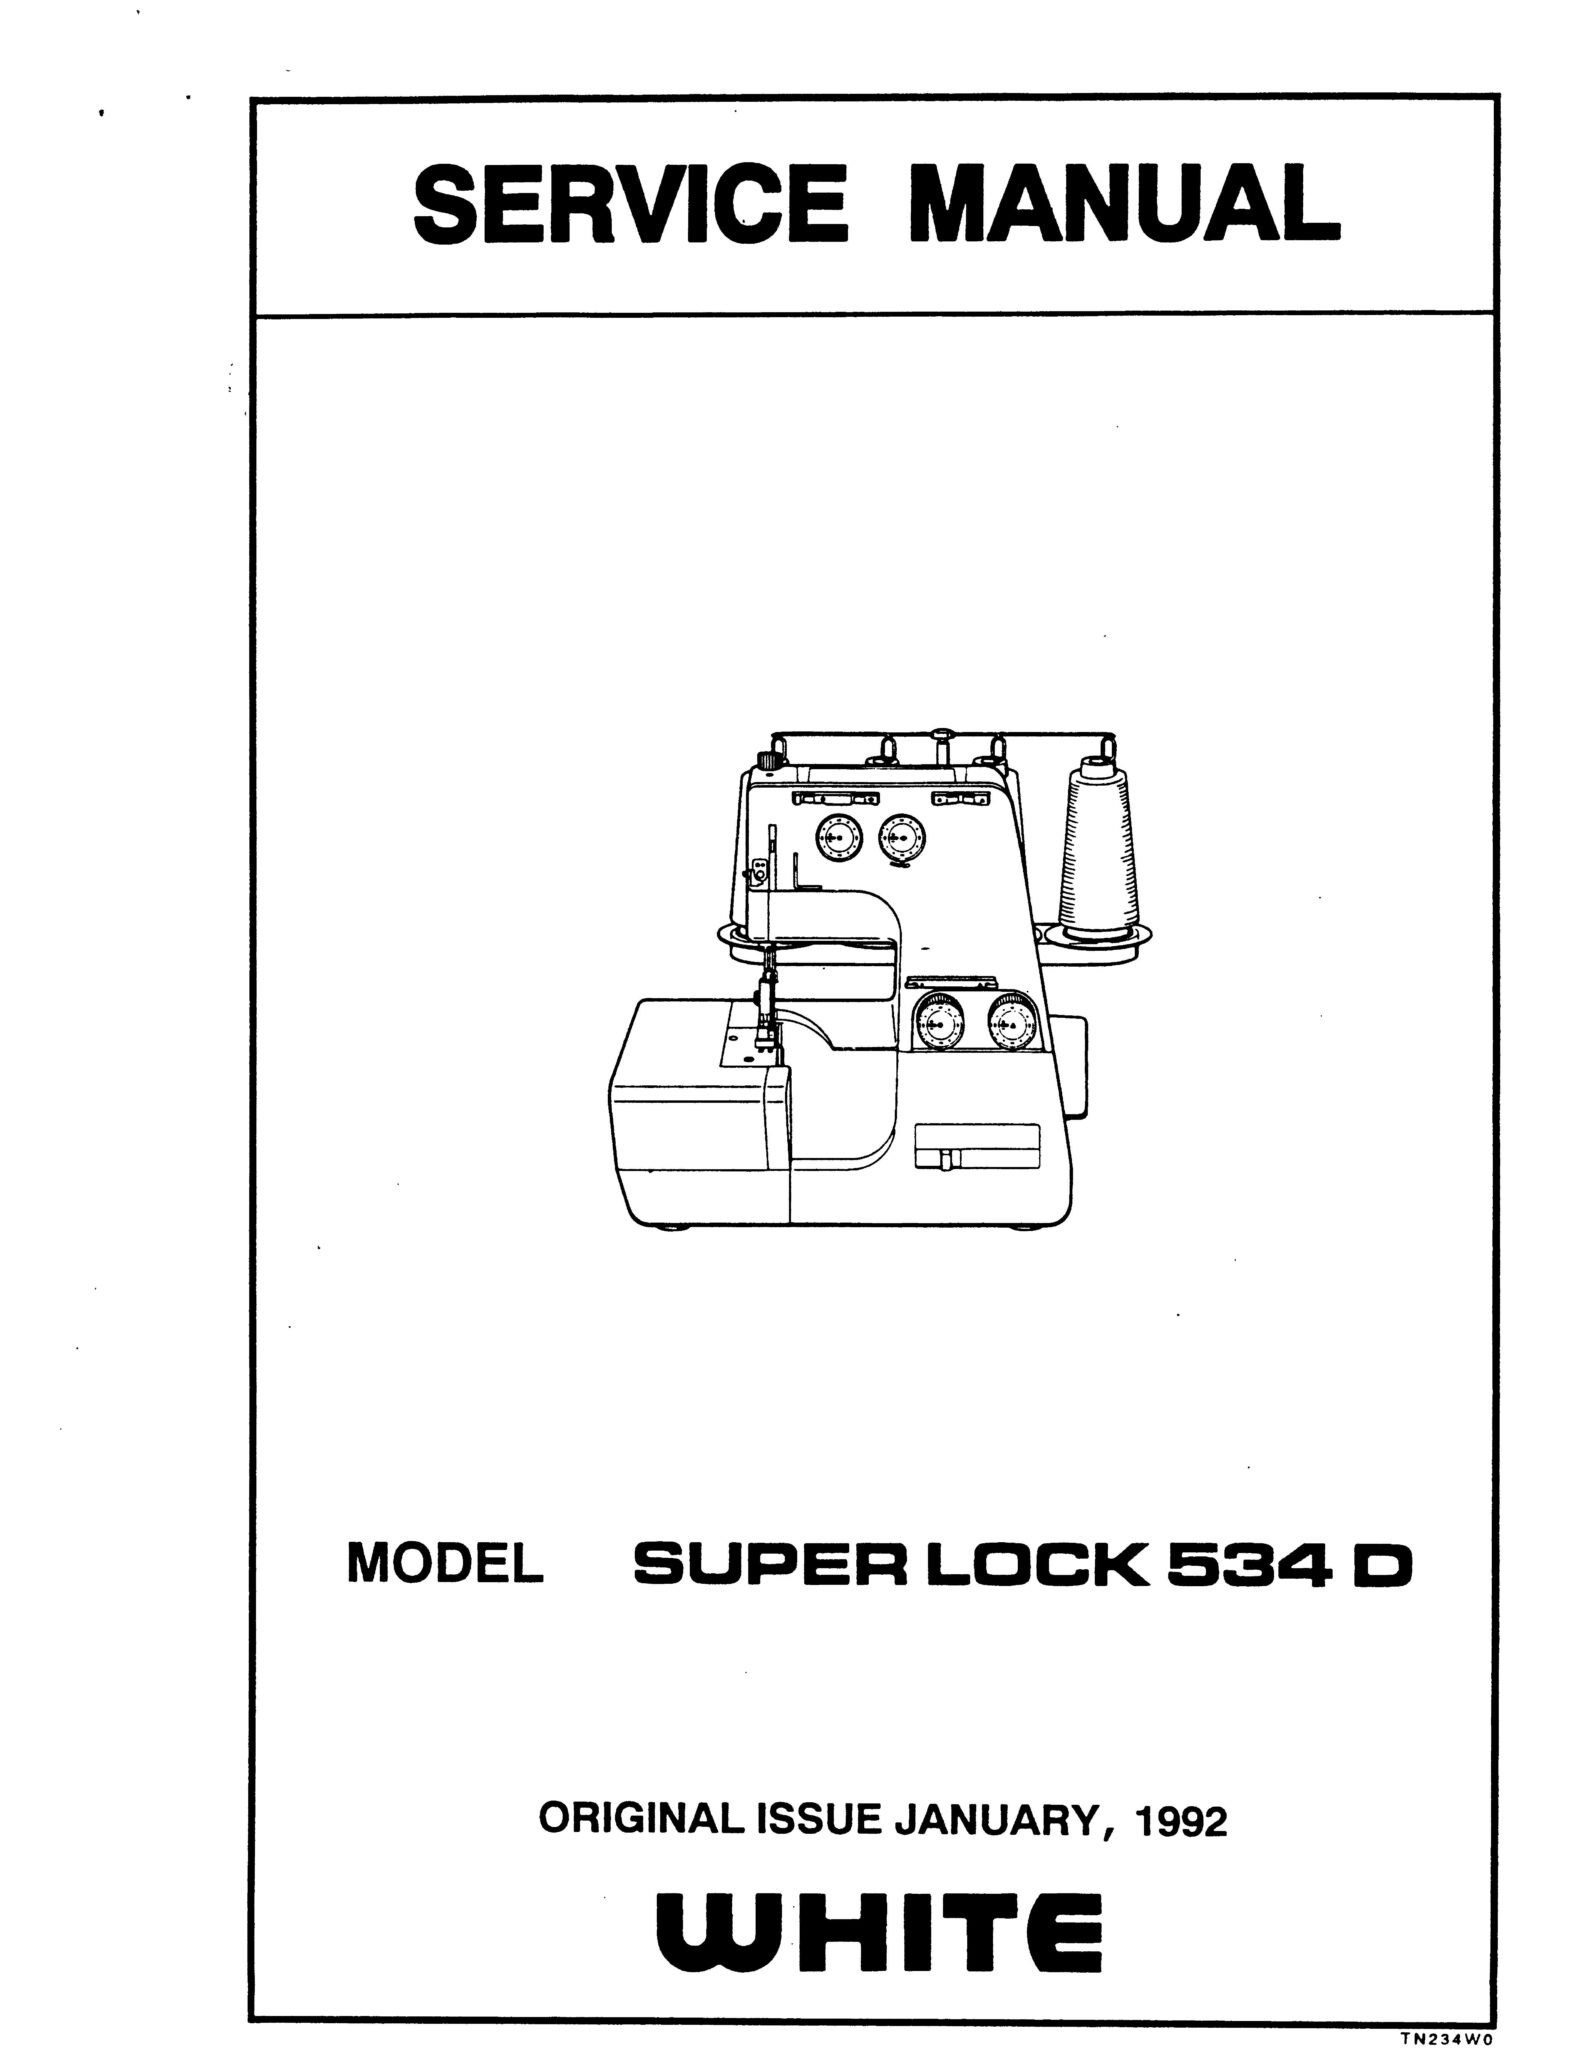 Service Manual For White Superlock 534D Serger Sewing Machine